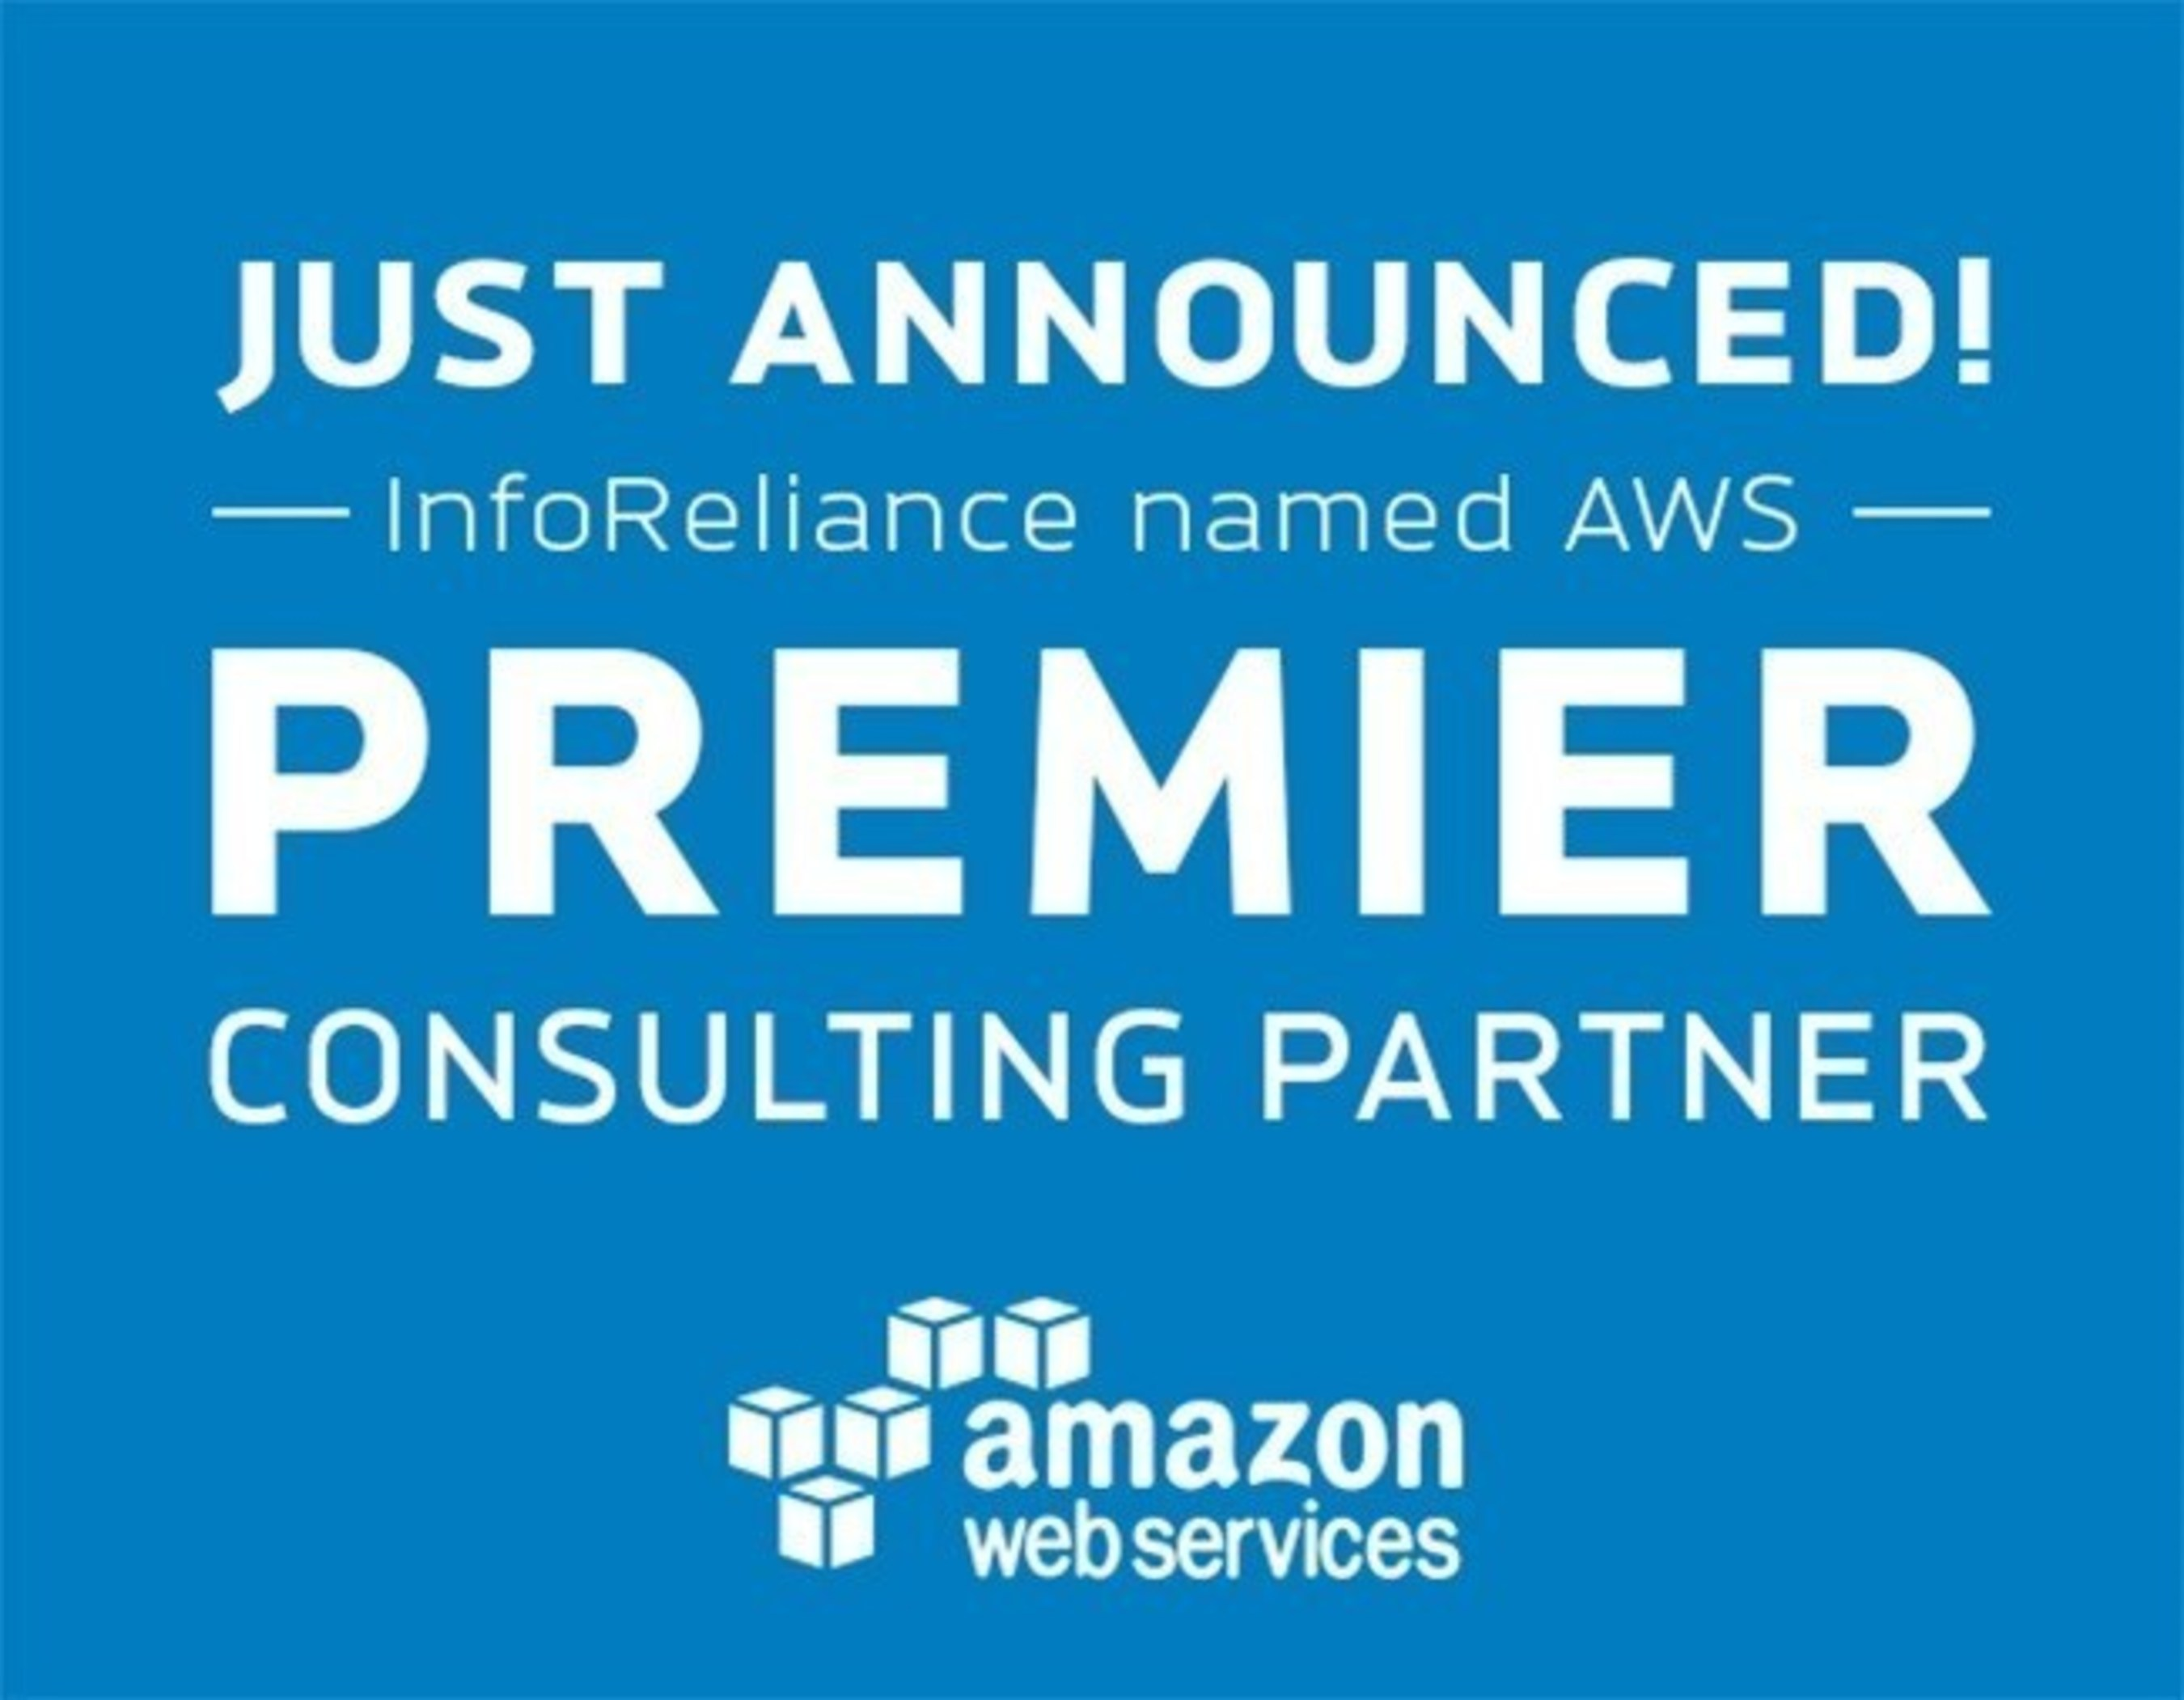 Amazon Web Services Names InfoReliance as an AWS Premier Consulting Partner